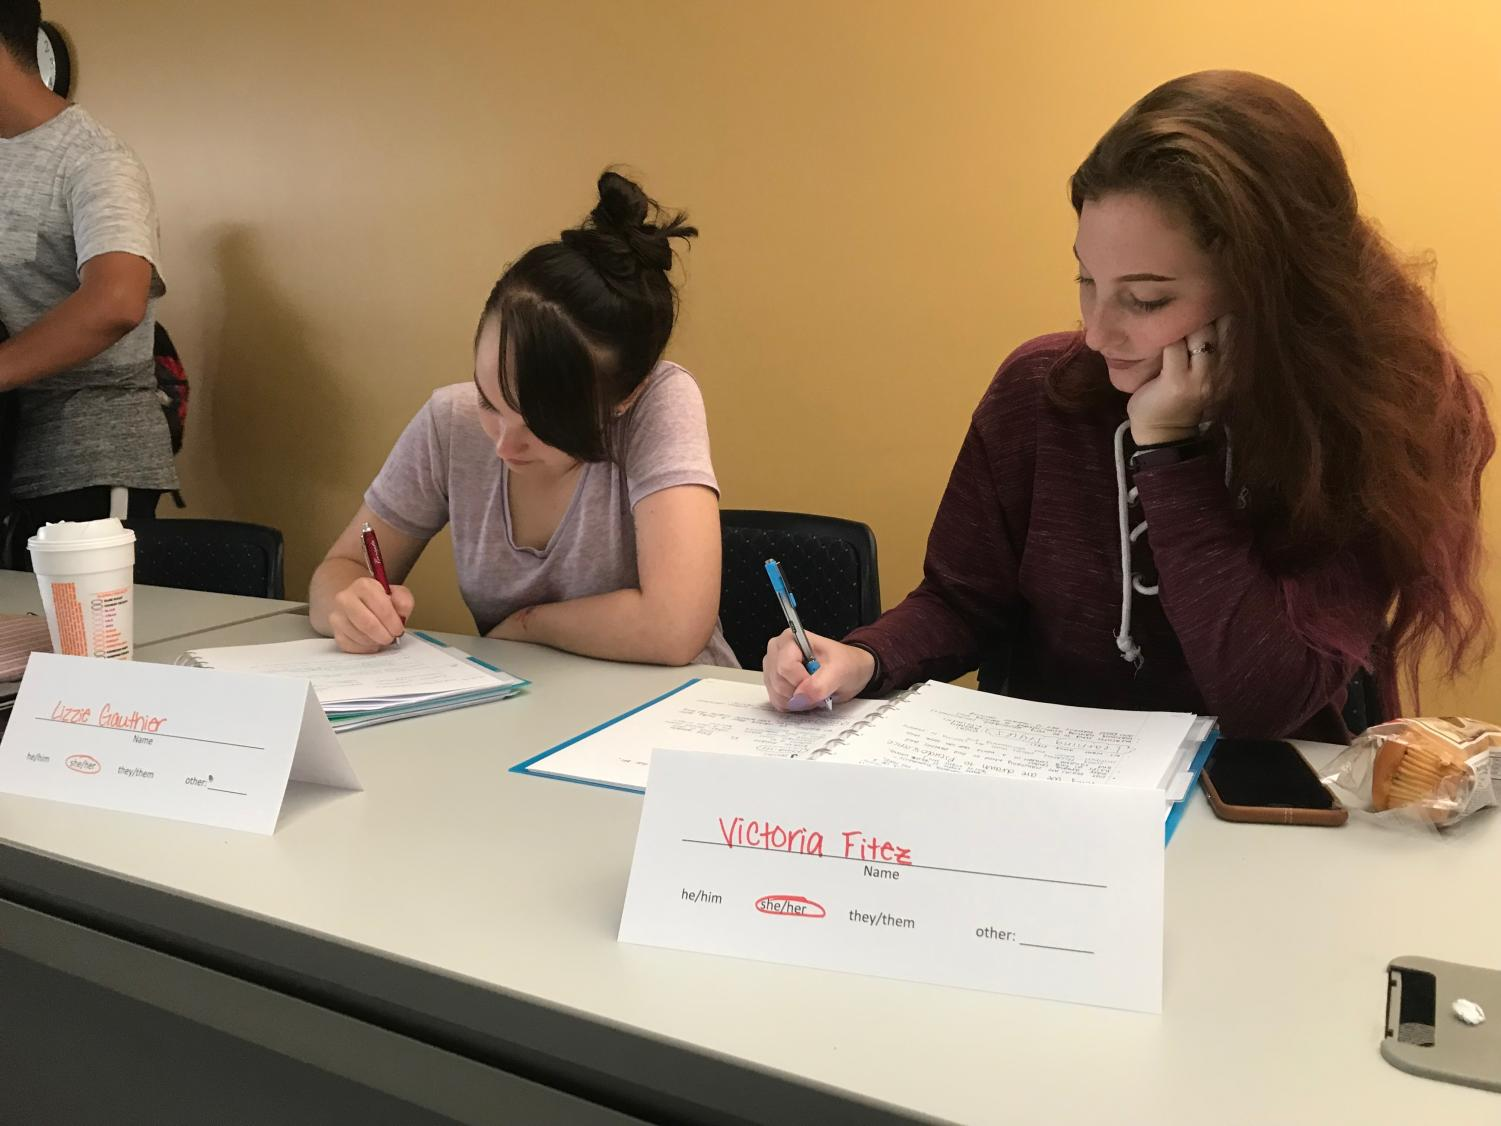 First-year students Lizzie Gauthier and Victoria Fitez take notes in Dr. Rachelle Tannenbaum's psychology class. Tannenbaum uses name cards during her classes to display students' preferred pronouns.